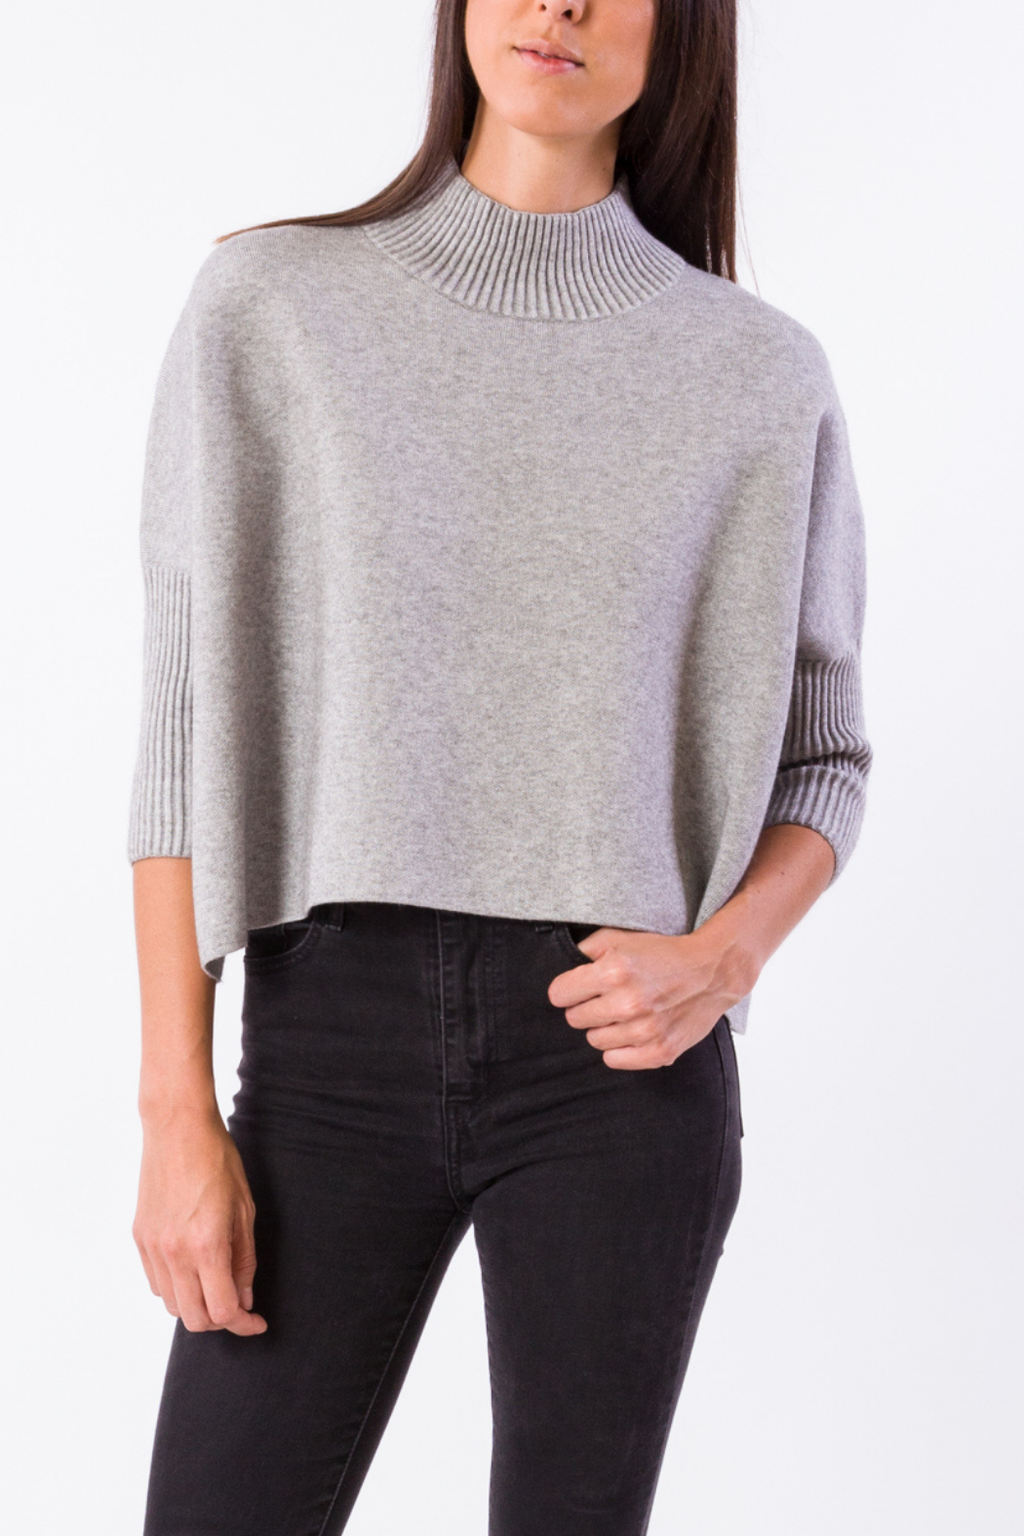 EcoVibe Aja Crop Sweater in Heather Grey